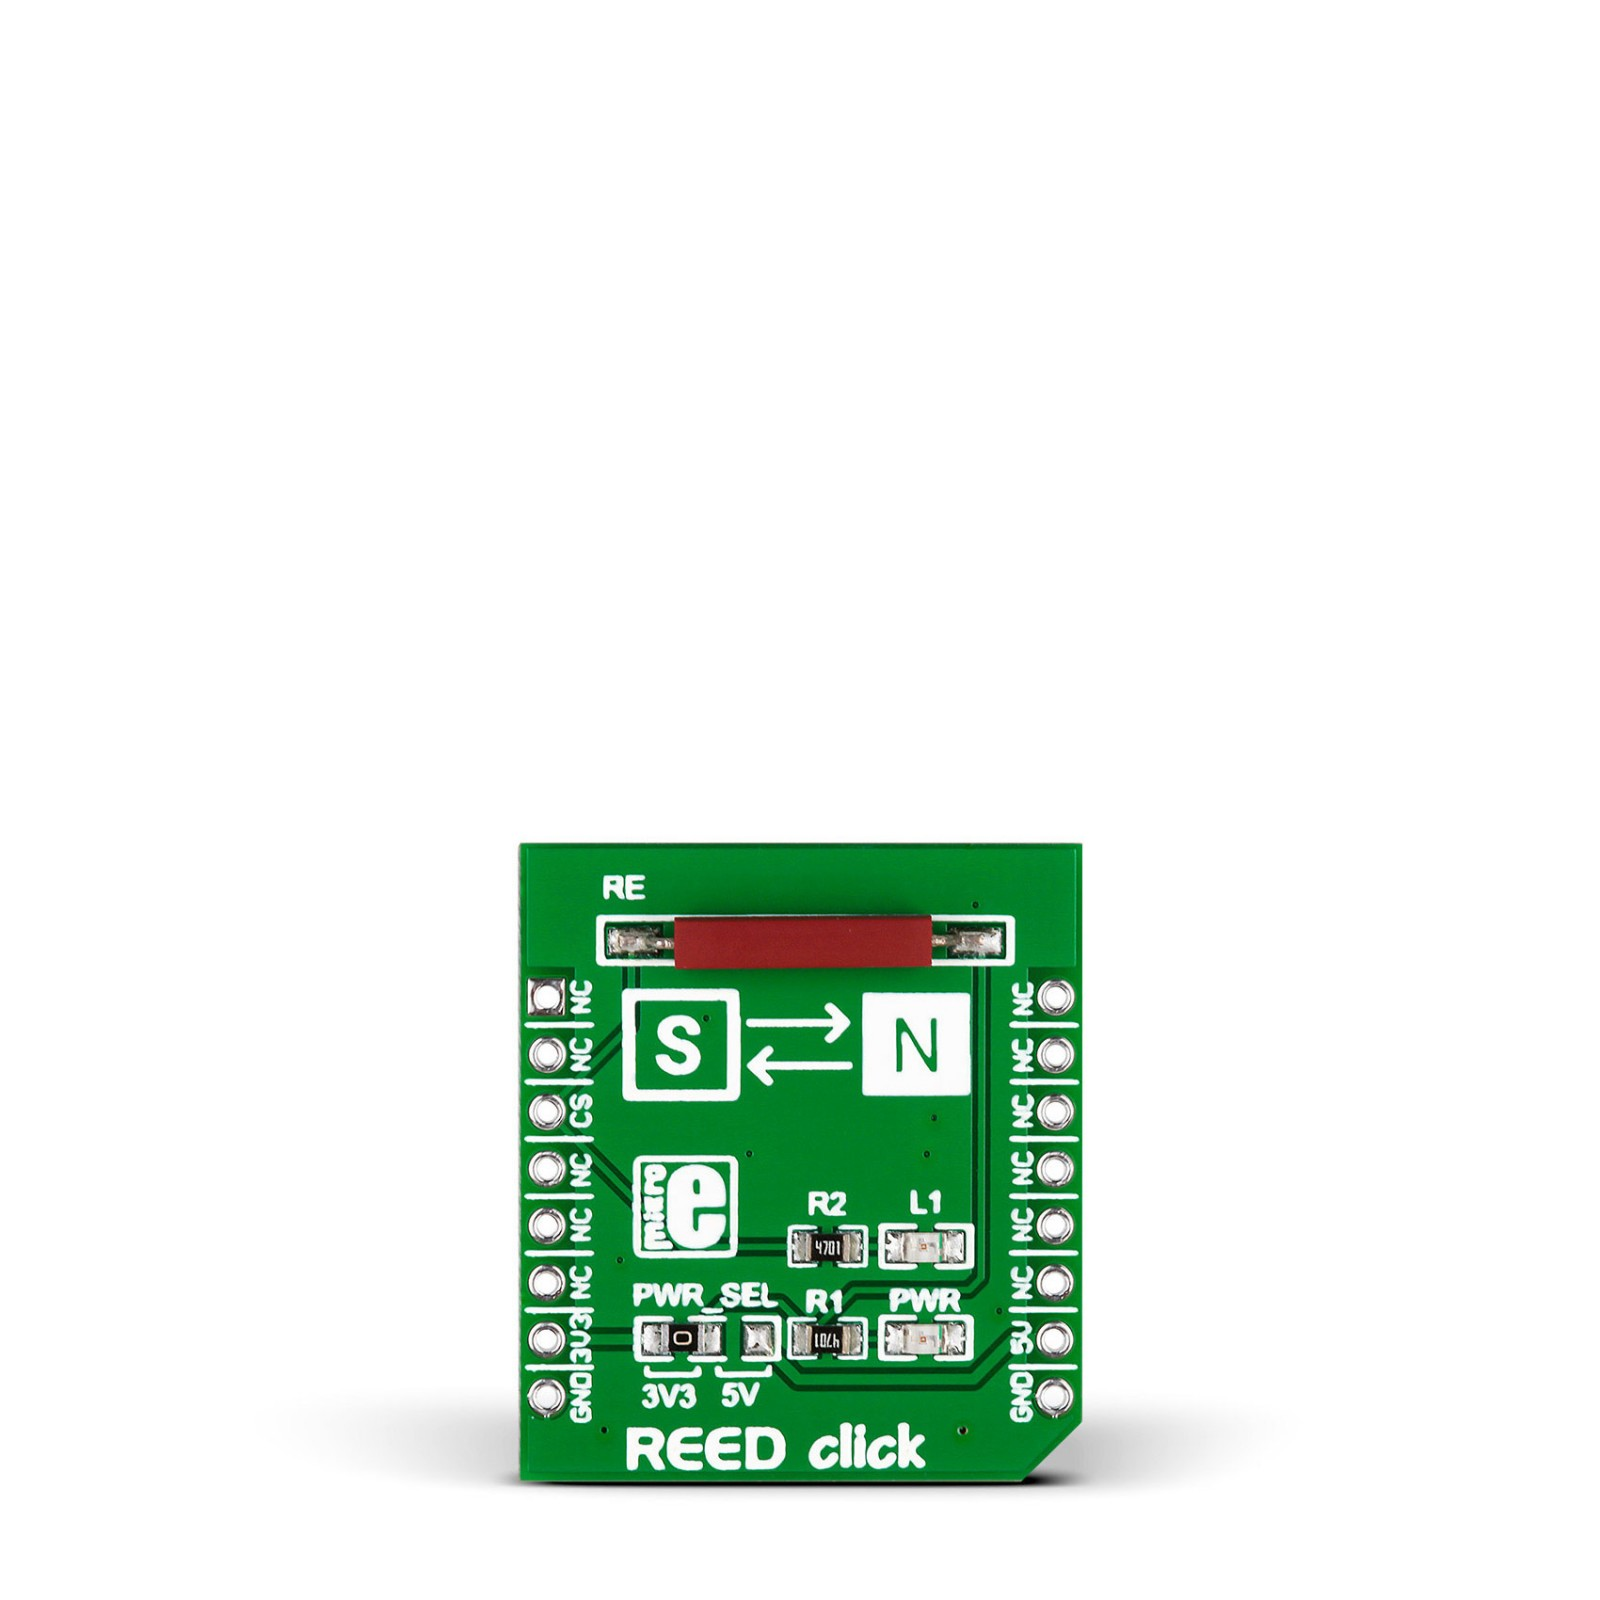 Reed Click A Switch In Mikrobus Form Factor Switches And Hall Effect Sensors Mgctlbxnmzp Mgctlbxv5112 Mgctlbxlc Mgctlbxpprestashop